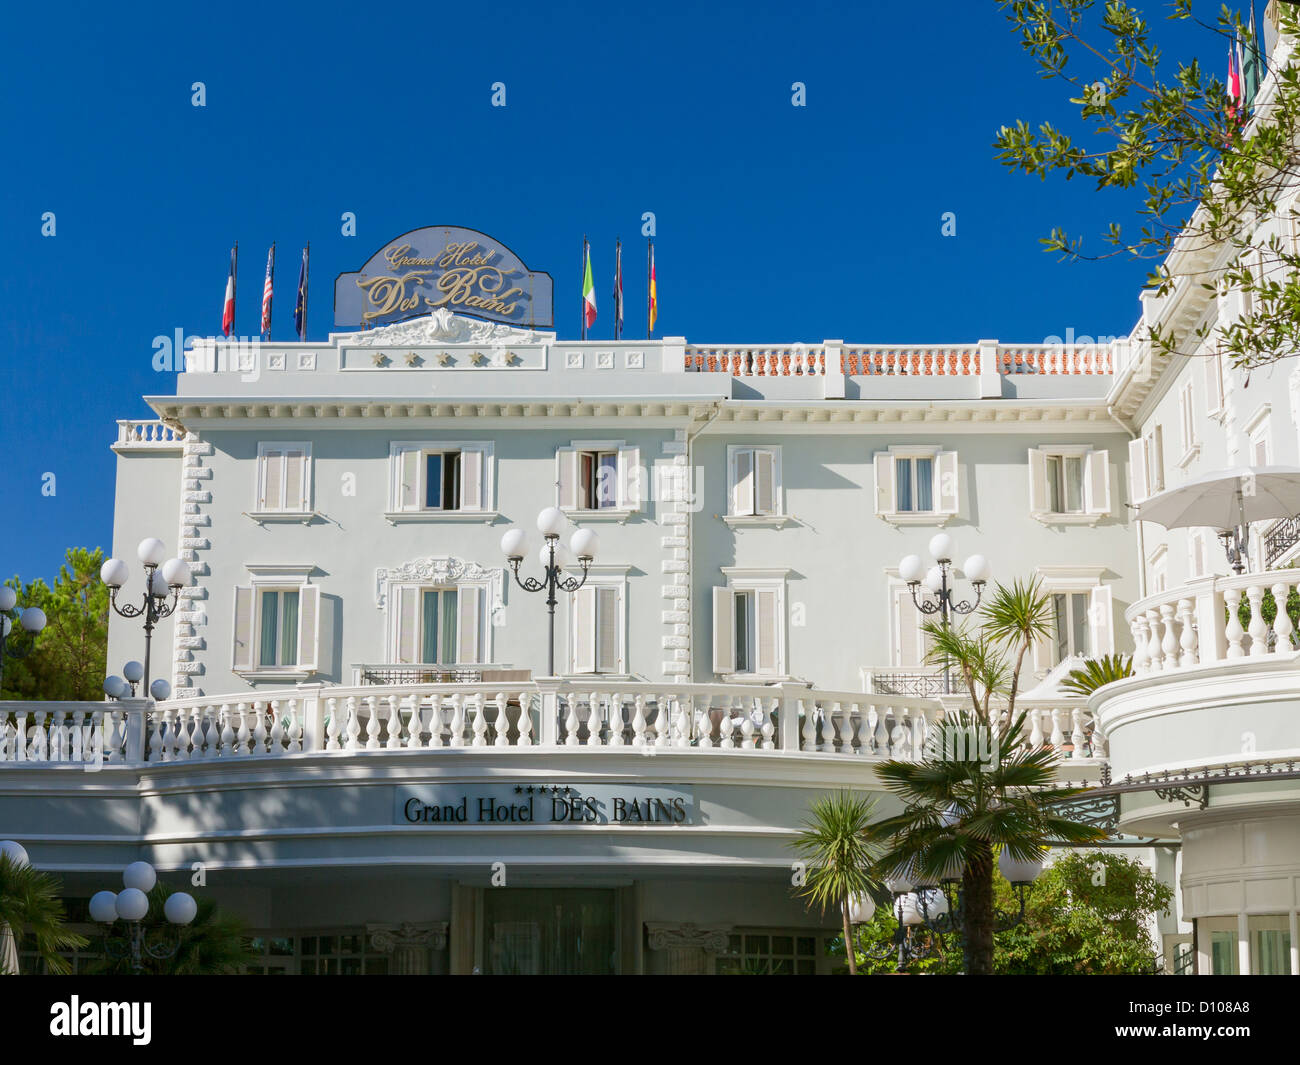 Grand hotel des bains in riccione italy stock photo for Grand hotel des bain